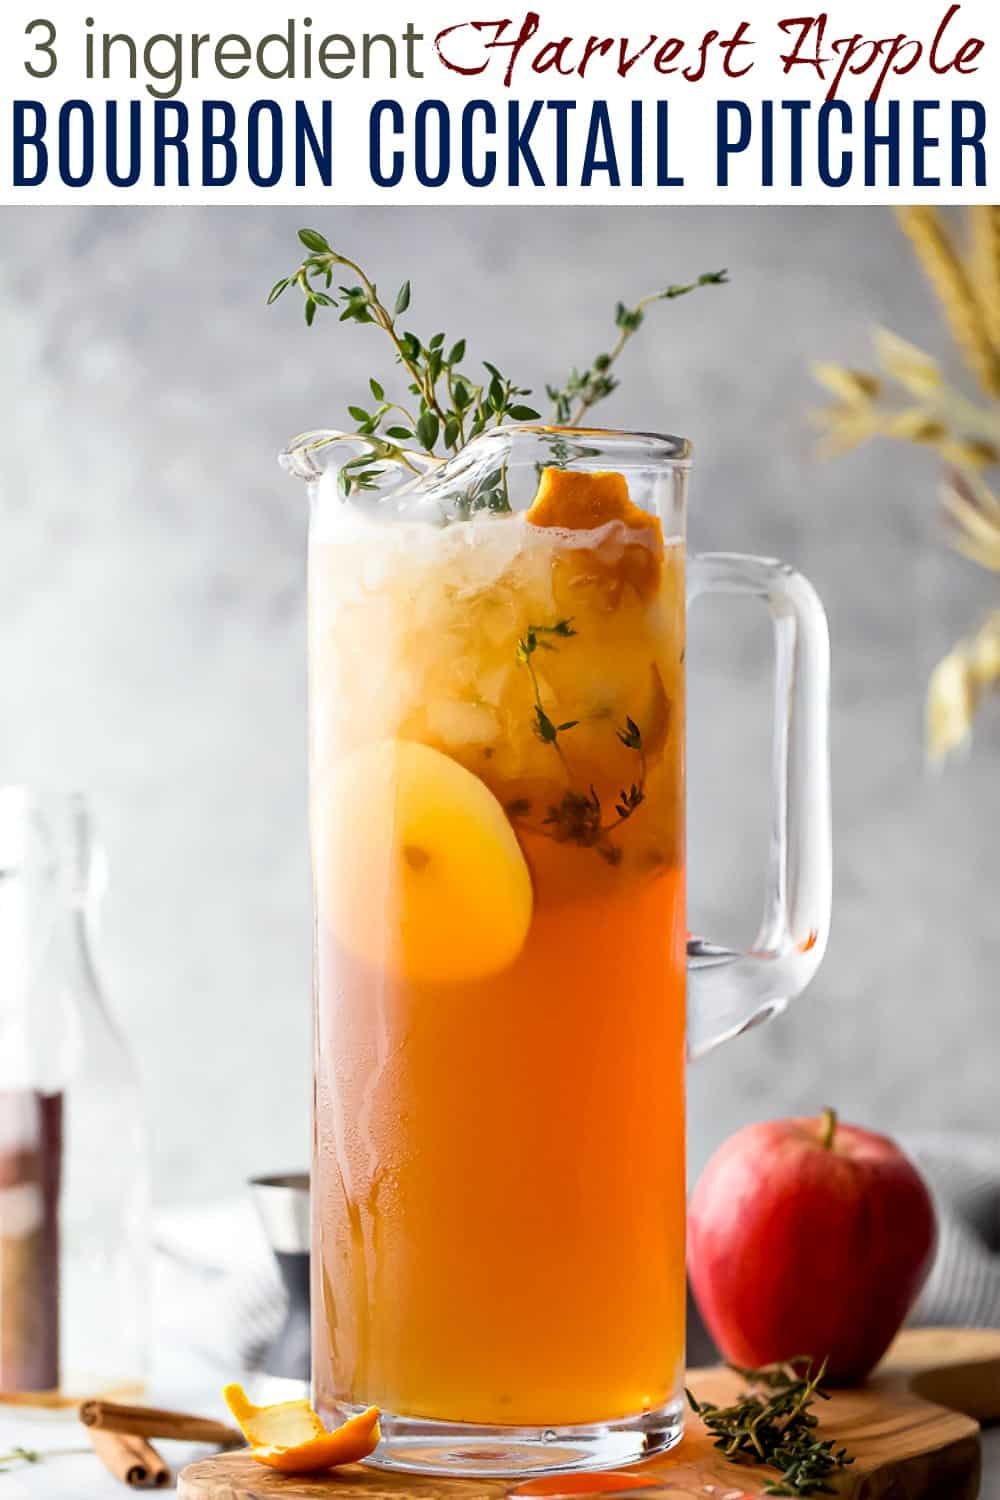 pinterest image for harvest apple bourbon cocktail